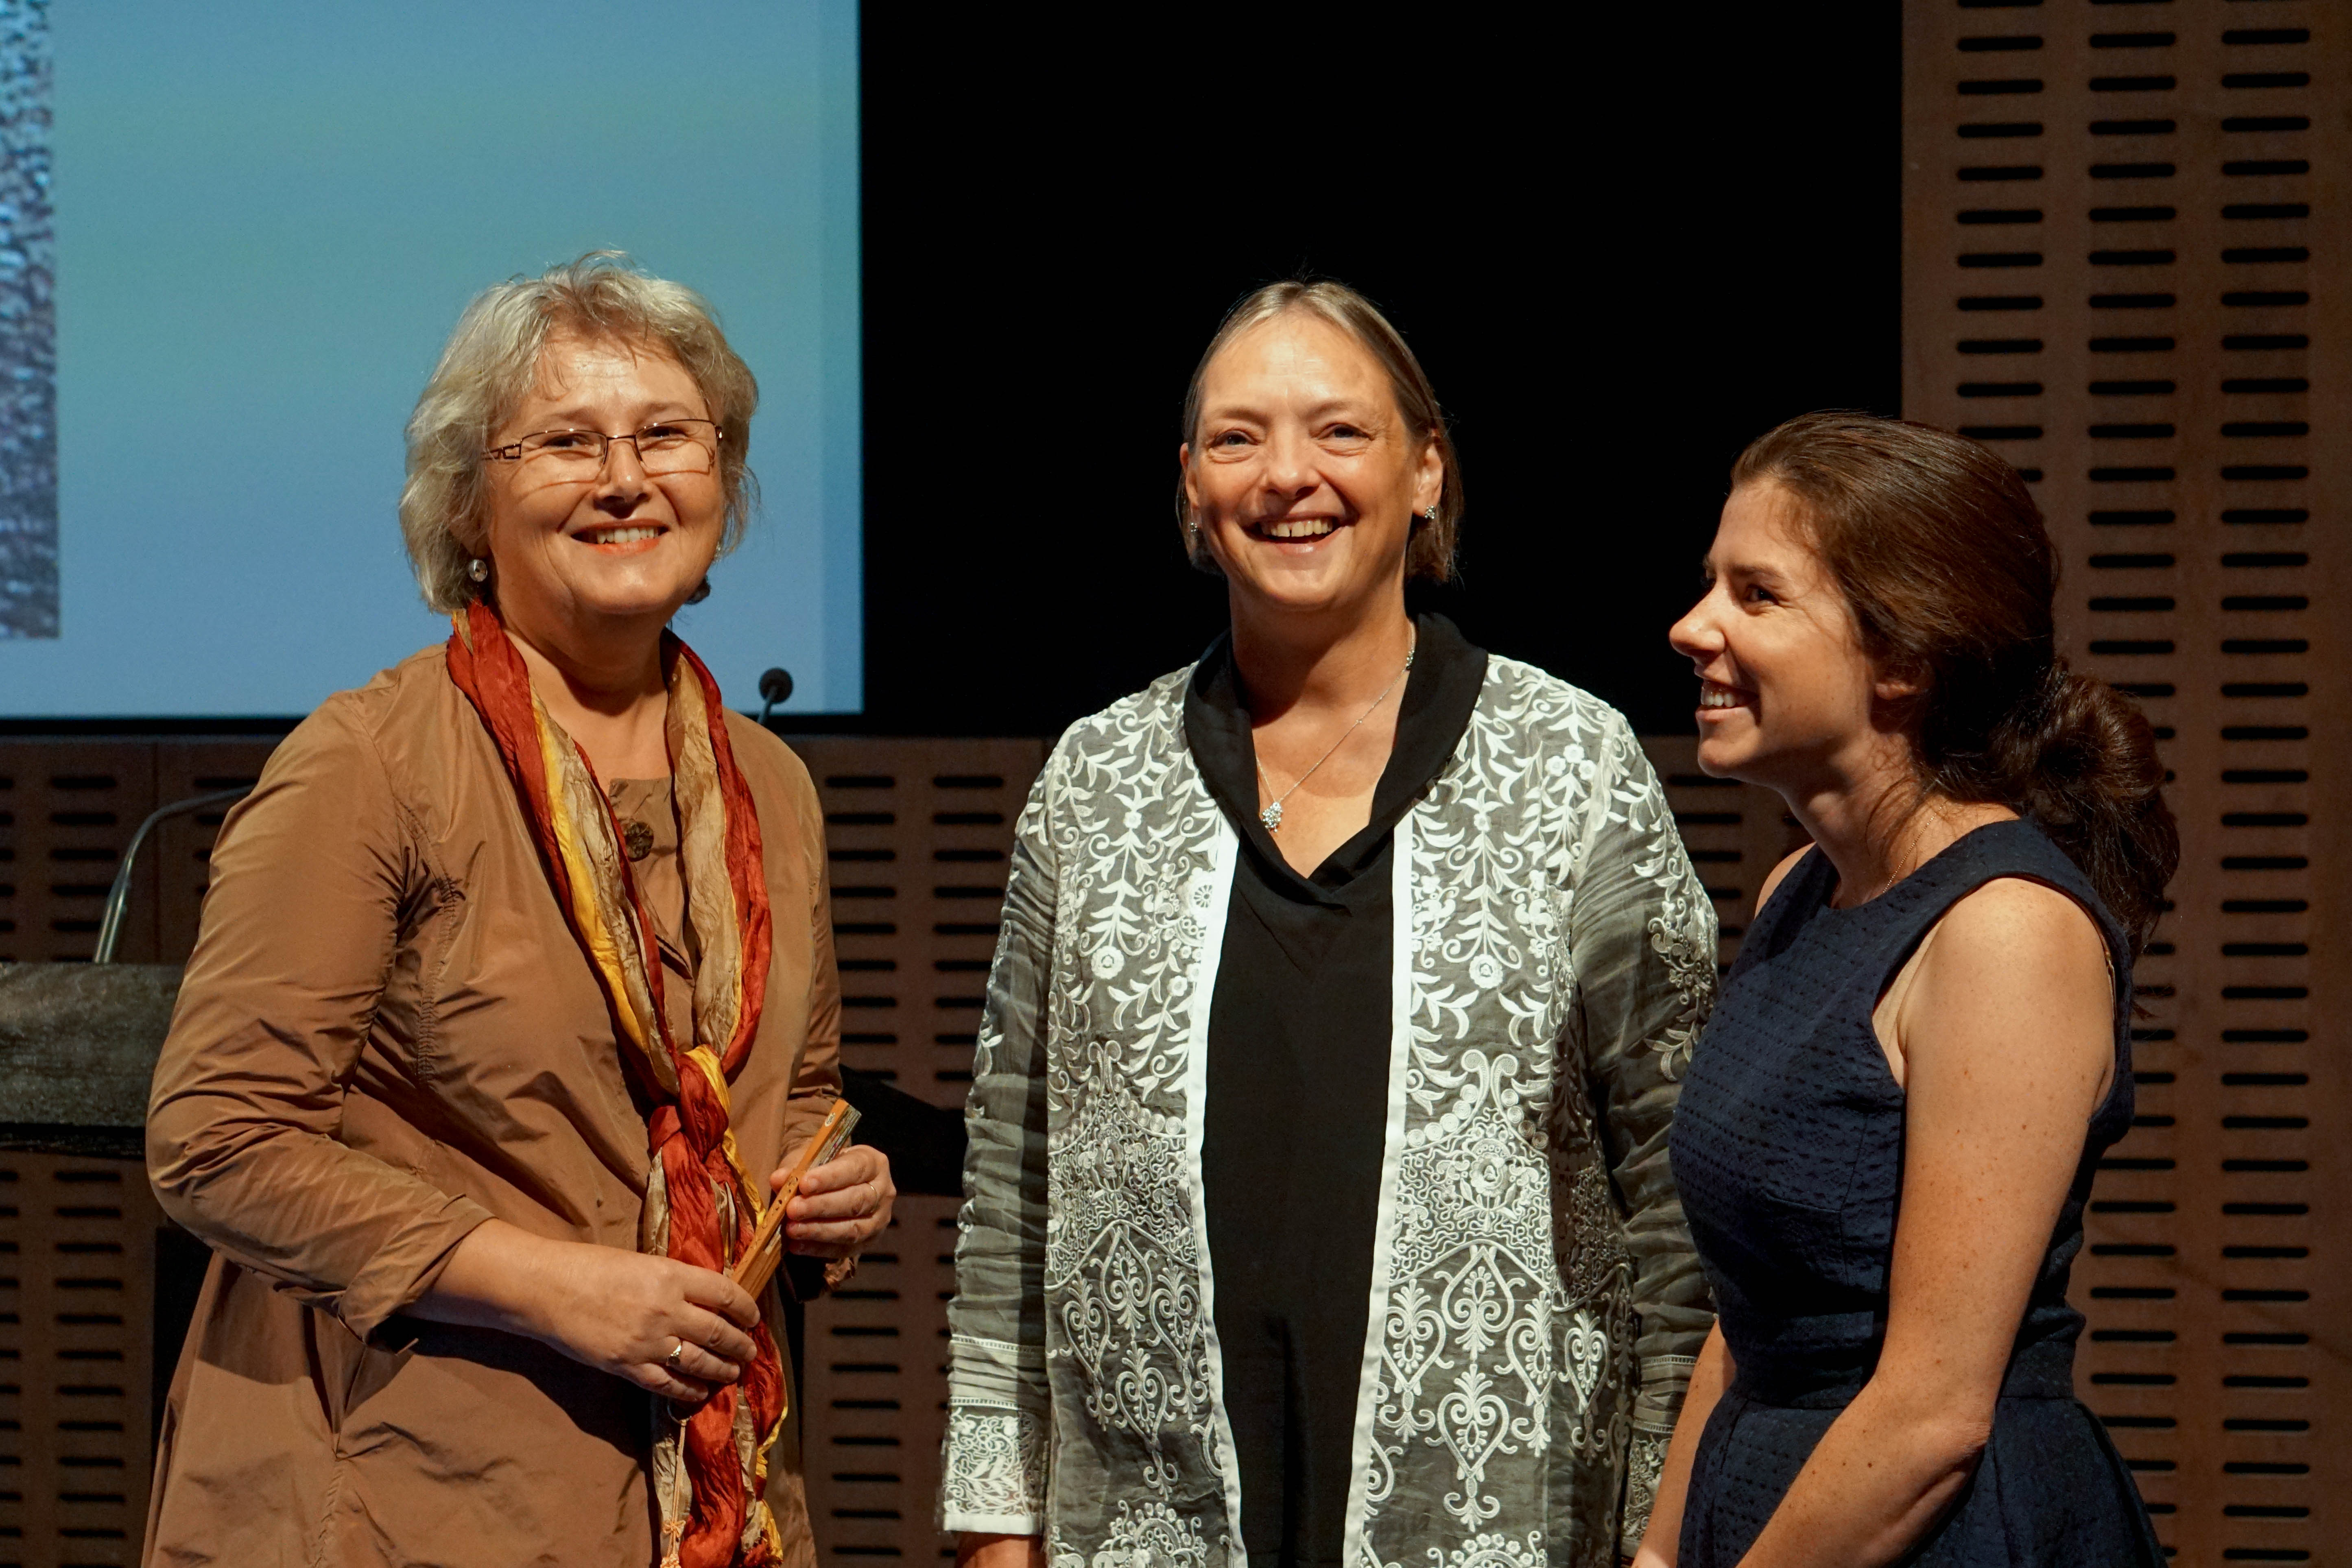 Pip Laurenson, Phoebe Boosalis, and Hannelore Roemich talk before the lecture. Image credit line: Nita Lee Roberts, the Institute of Fine Arts, NYU